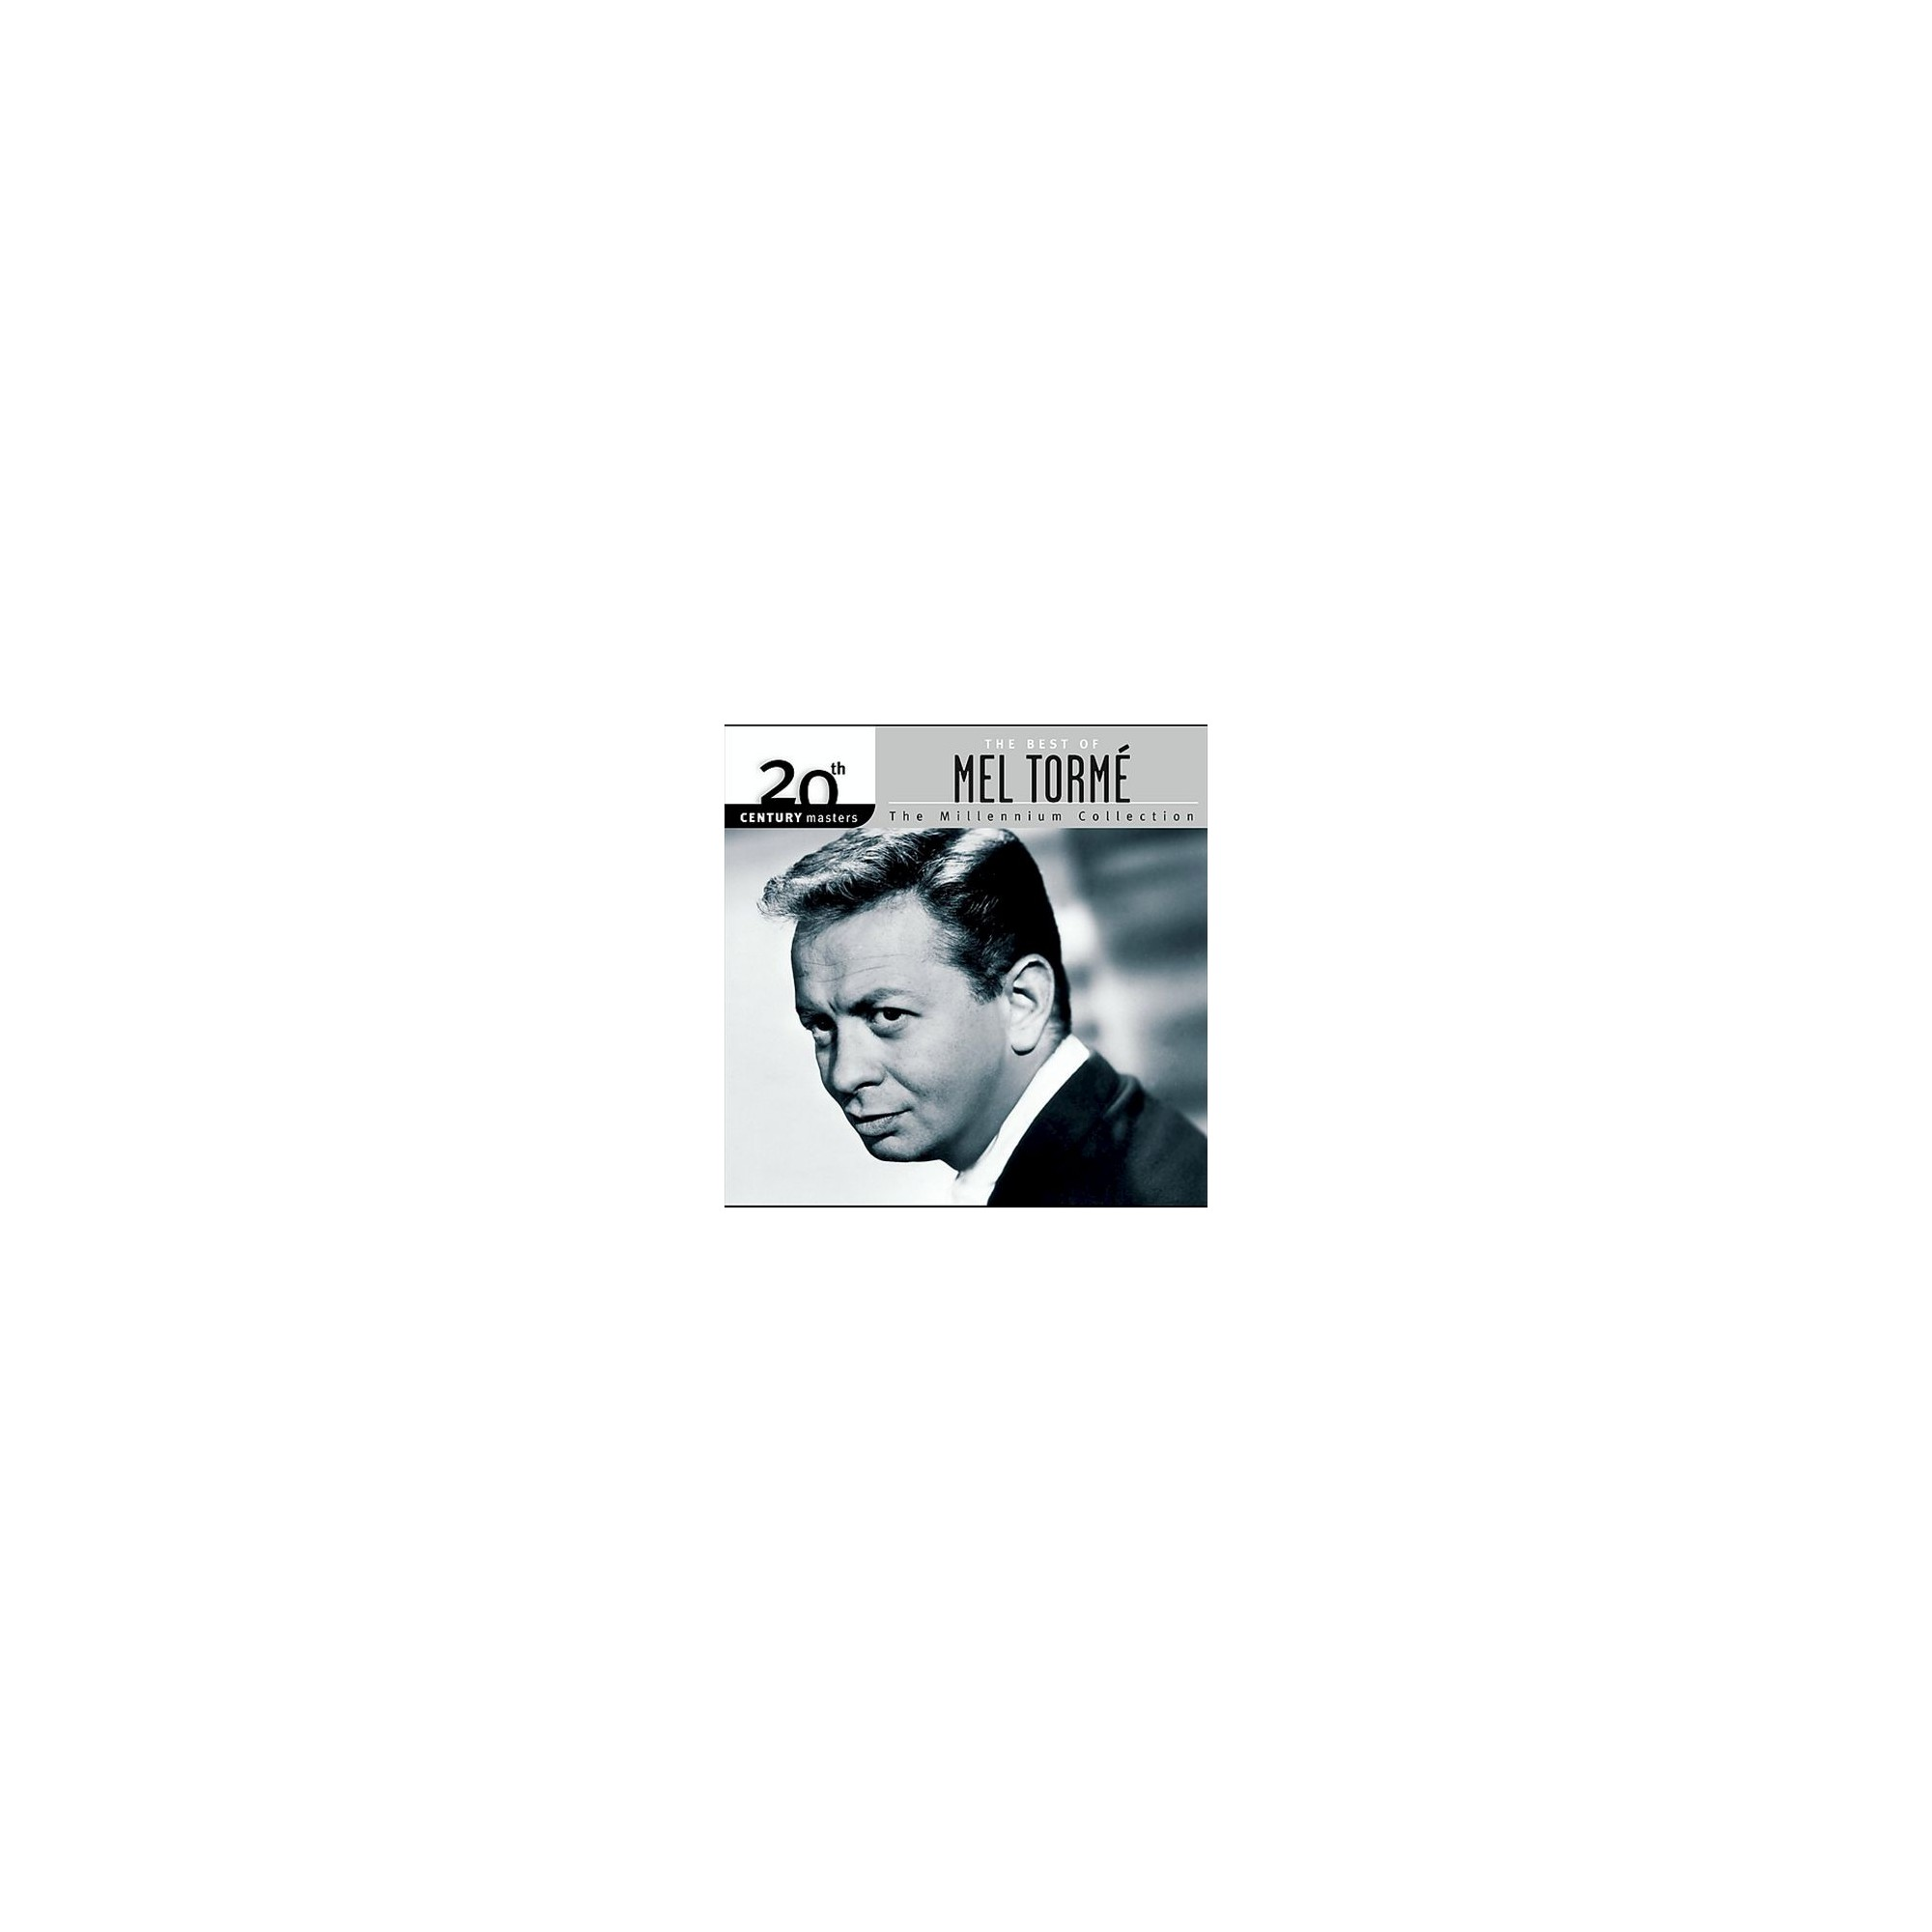 Mel Torme - 20th Century Masters - The Millennium Collection: The Best Of Mel Torme (CD)